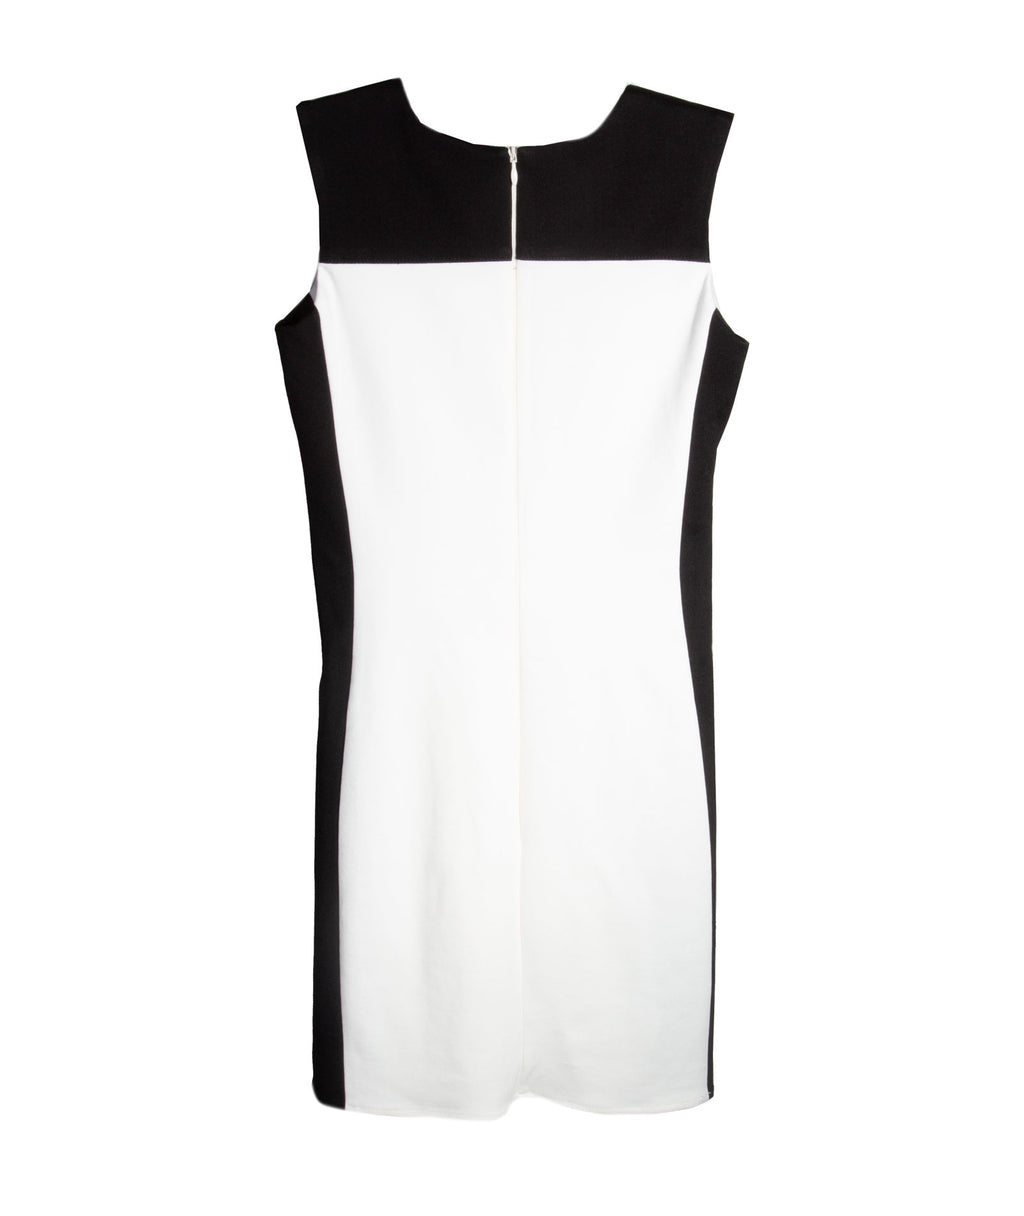 By Debra Girls Ponte Heath Ivory Black